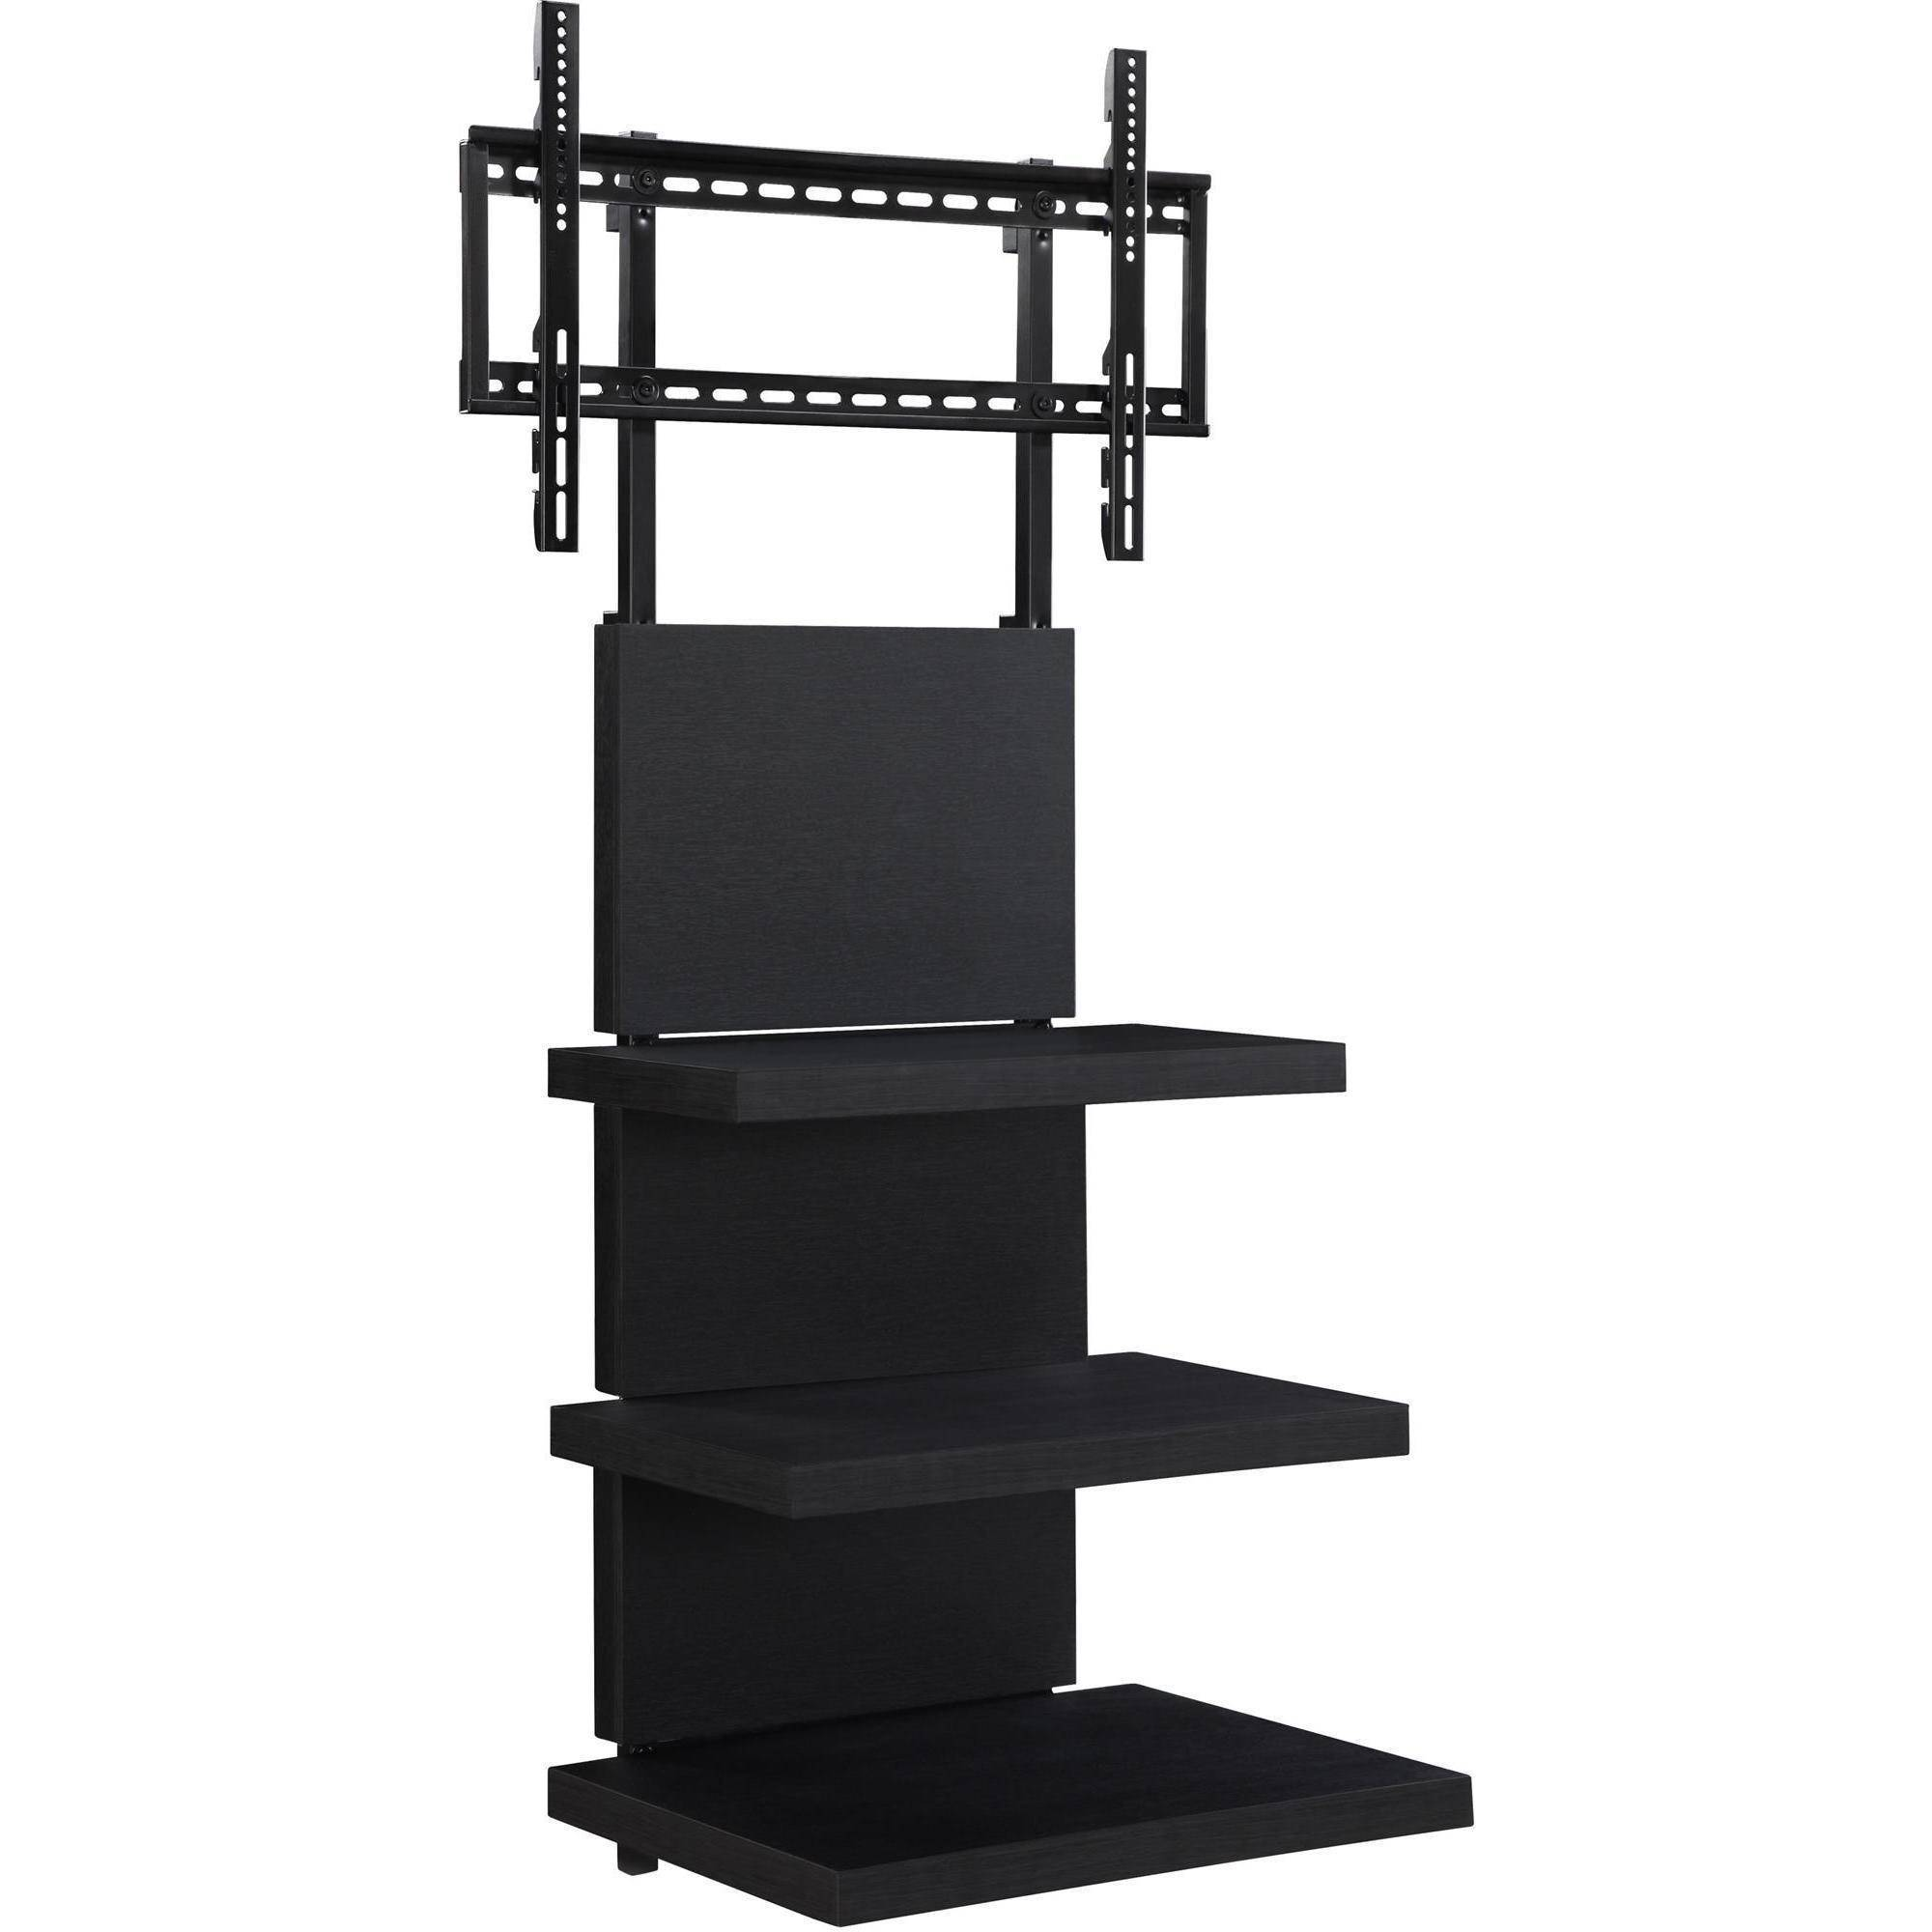 wall mount tv stand with 3 shelves black for tvs up to 60. Black Bedroom Furniture Sets. Home Design Ideas